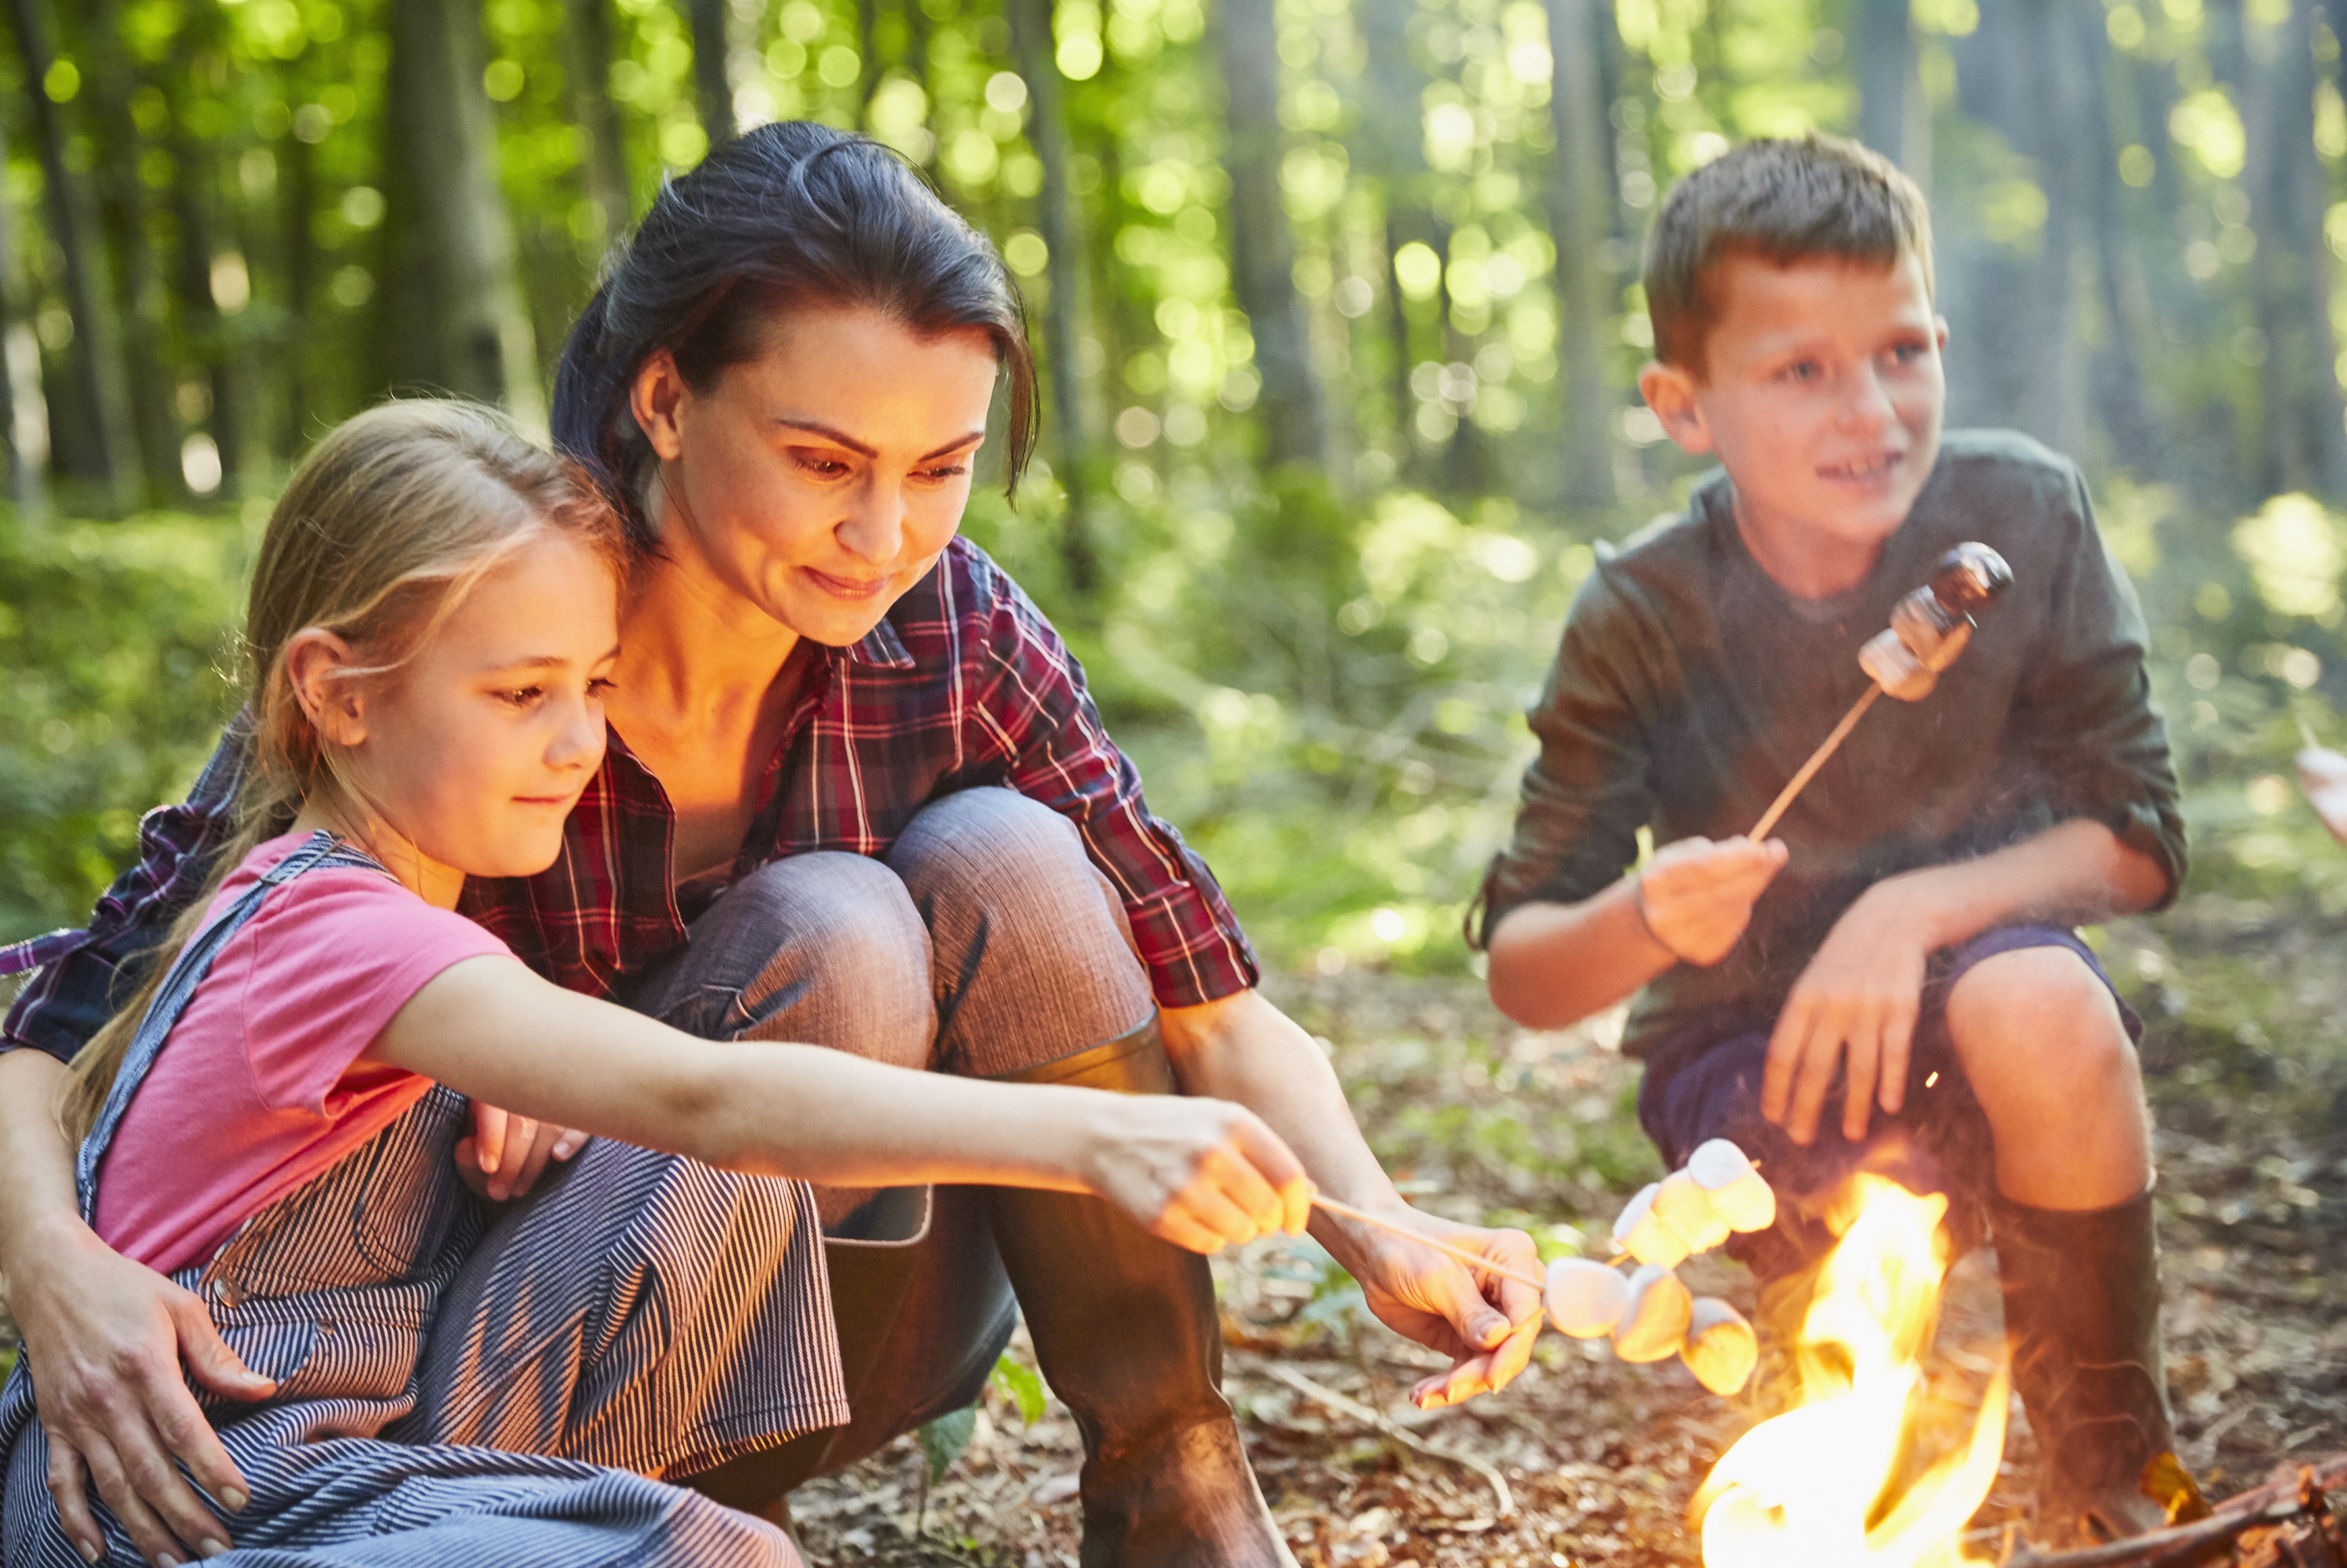 13 kid-friendly campfire stories with just a bite of fright – sheknows